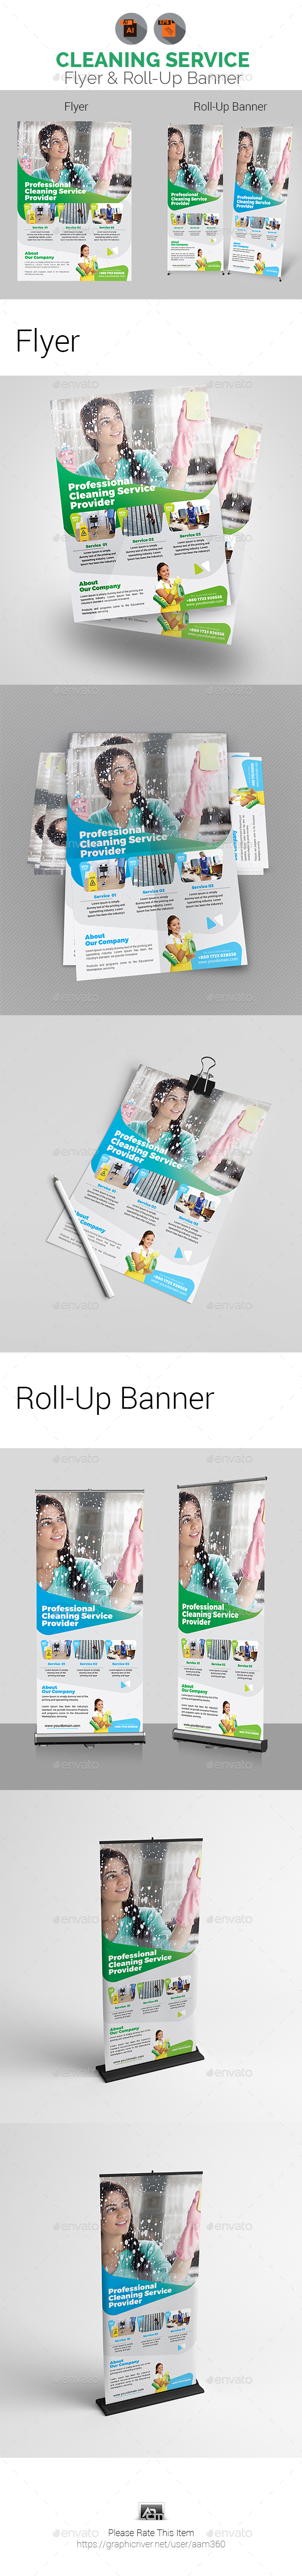 Cleaning Services Flyer & Roll-Up Banner - Print Templates